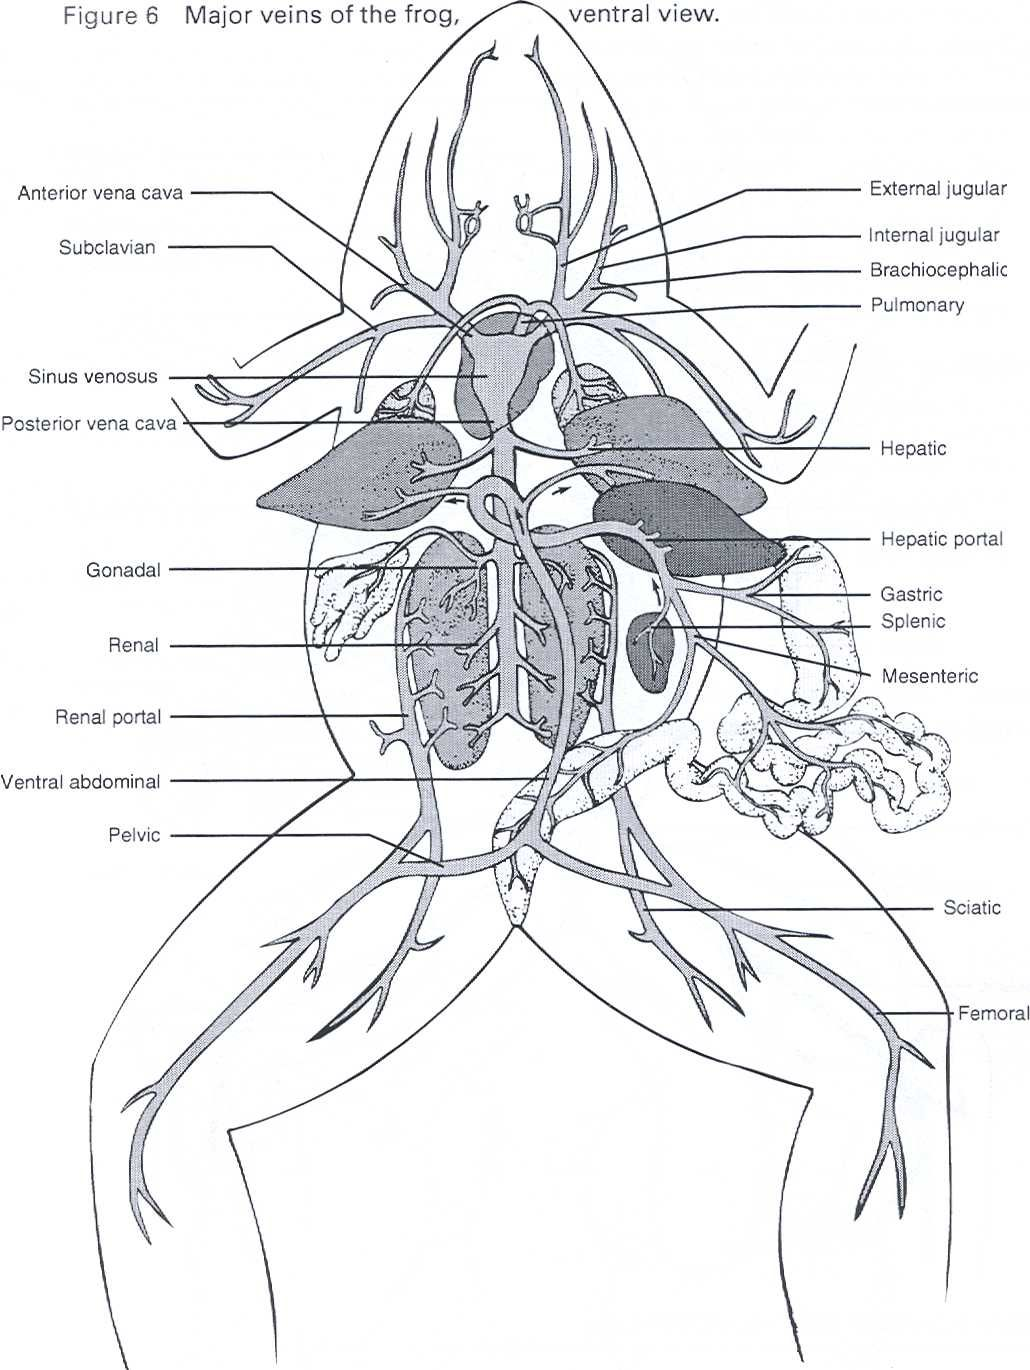 frog anatomy coloring sheets - Google Search | science frog ...